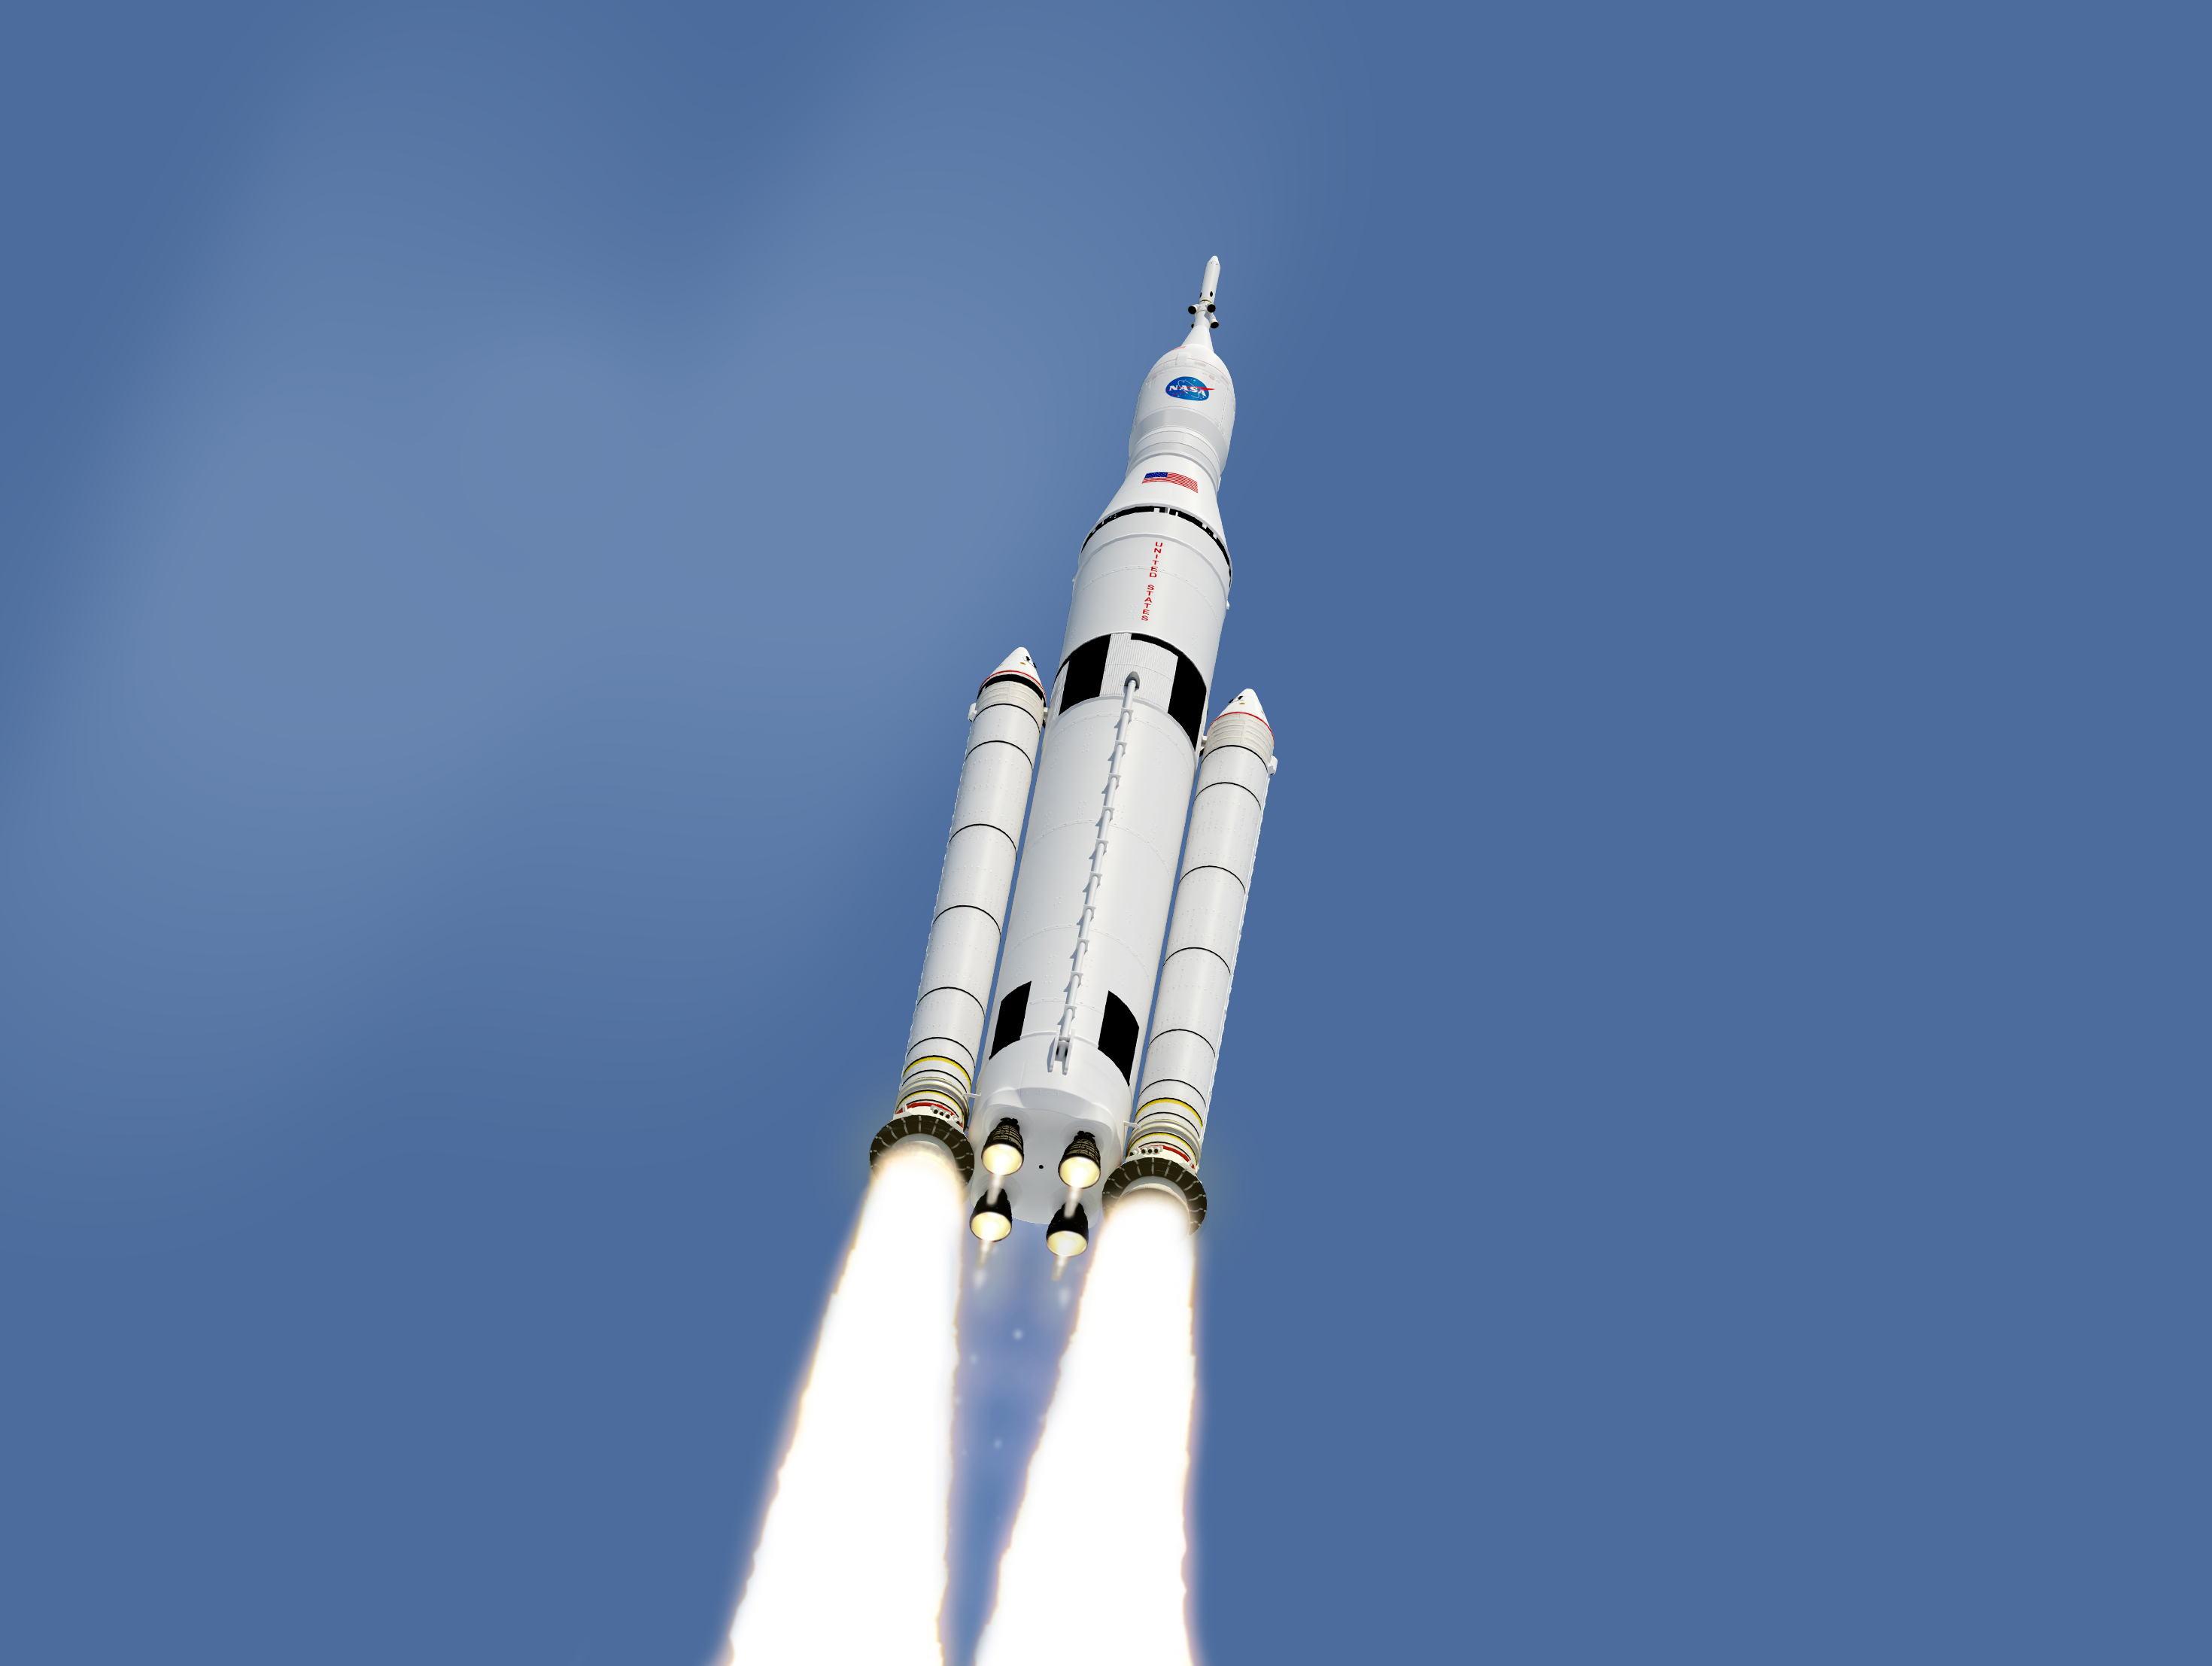 An artist's impression of what the Space Launch System rocket may look like once complete.